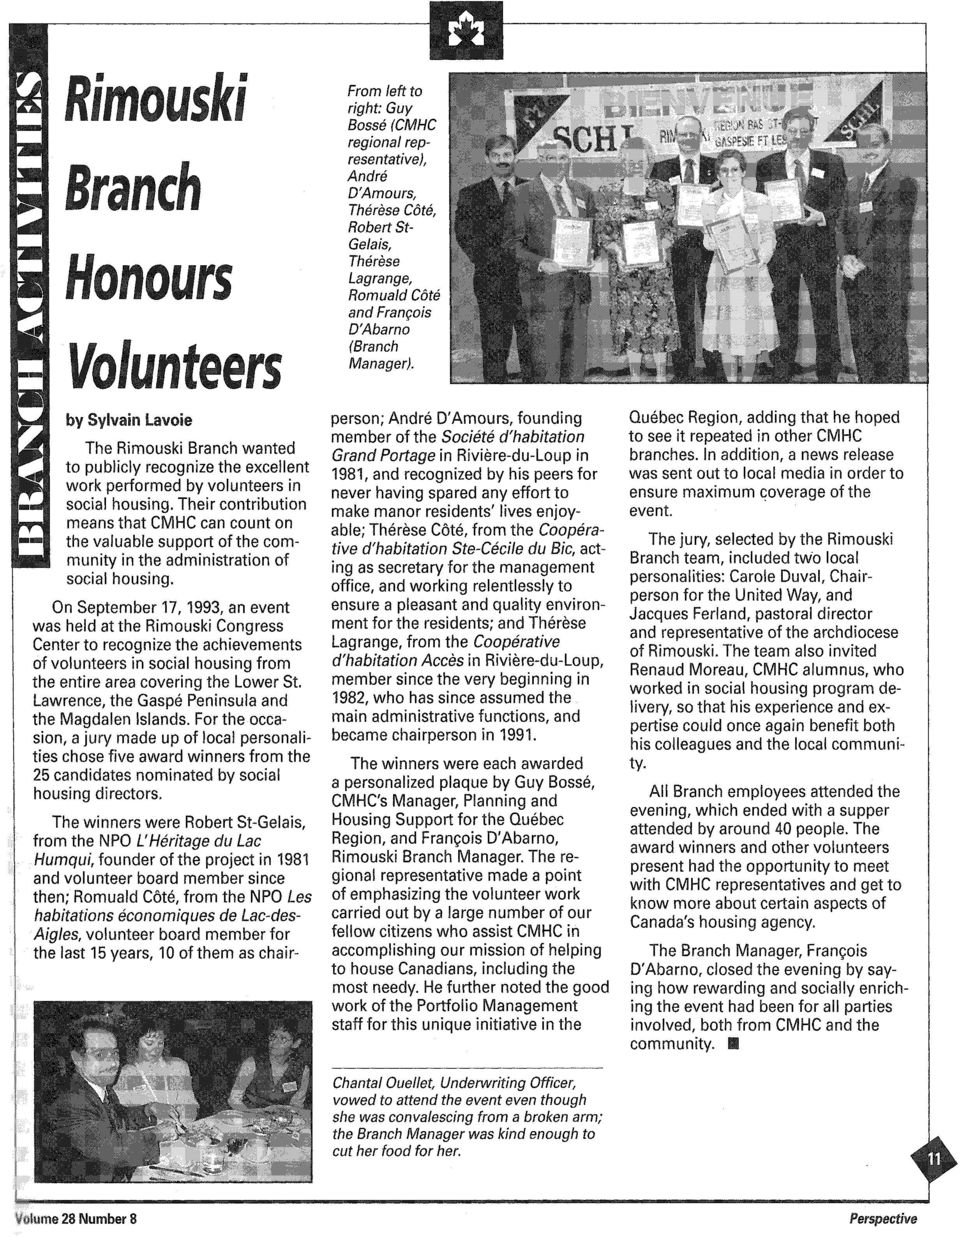 On September 17, 1993, an event was held at the Rimouski Congress Center to recognize the achievements of volunteers in social housing from the entire area covering the Lower St.